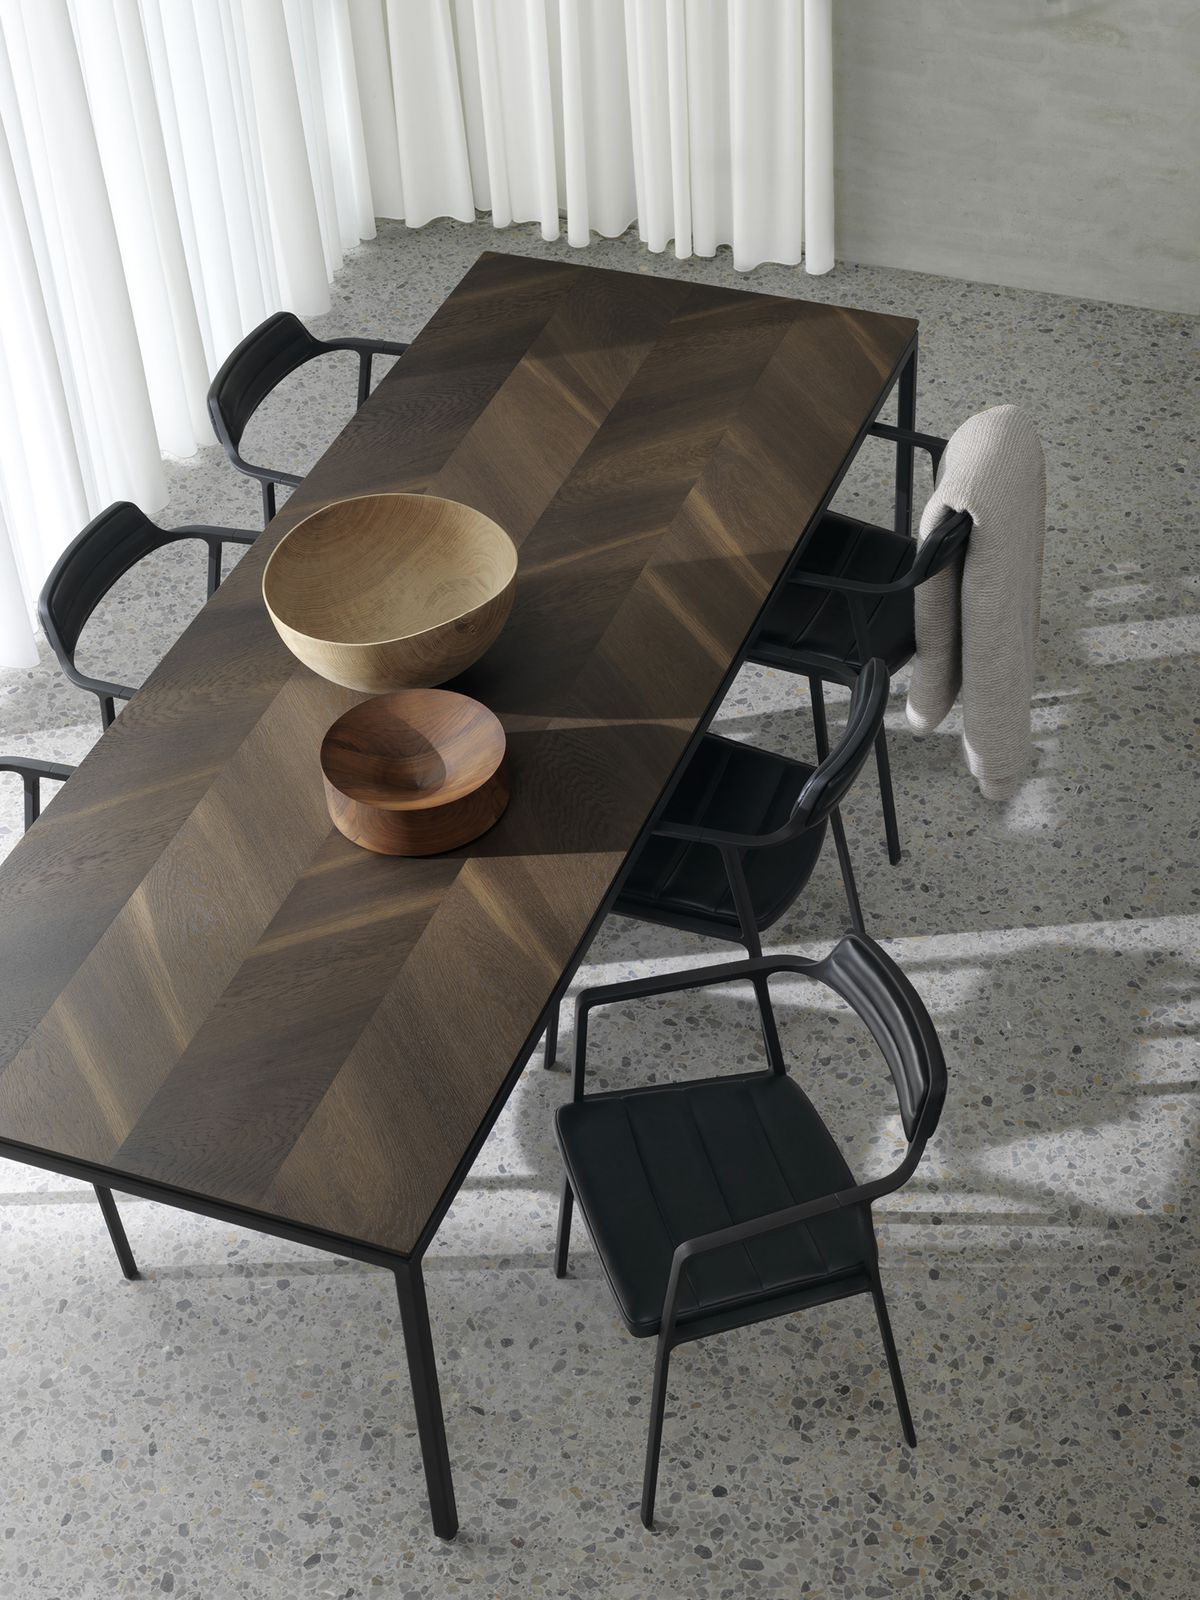 Chairs around dining table